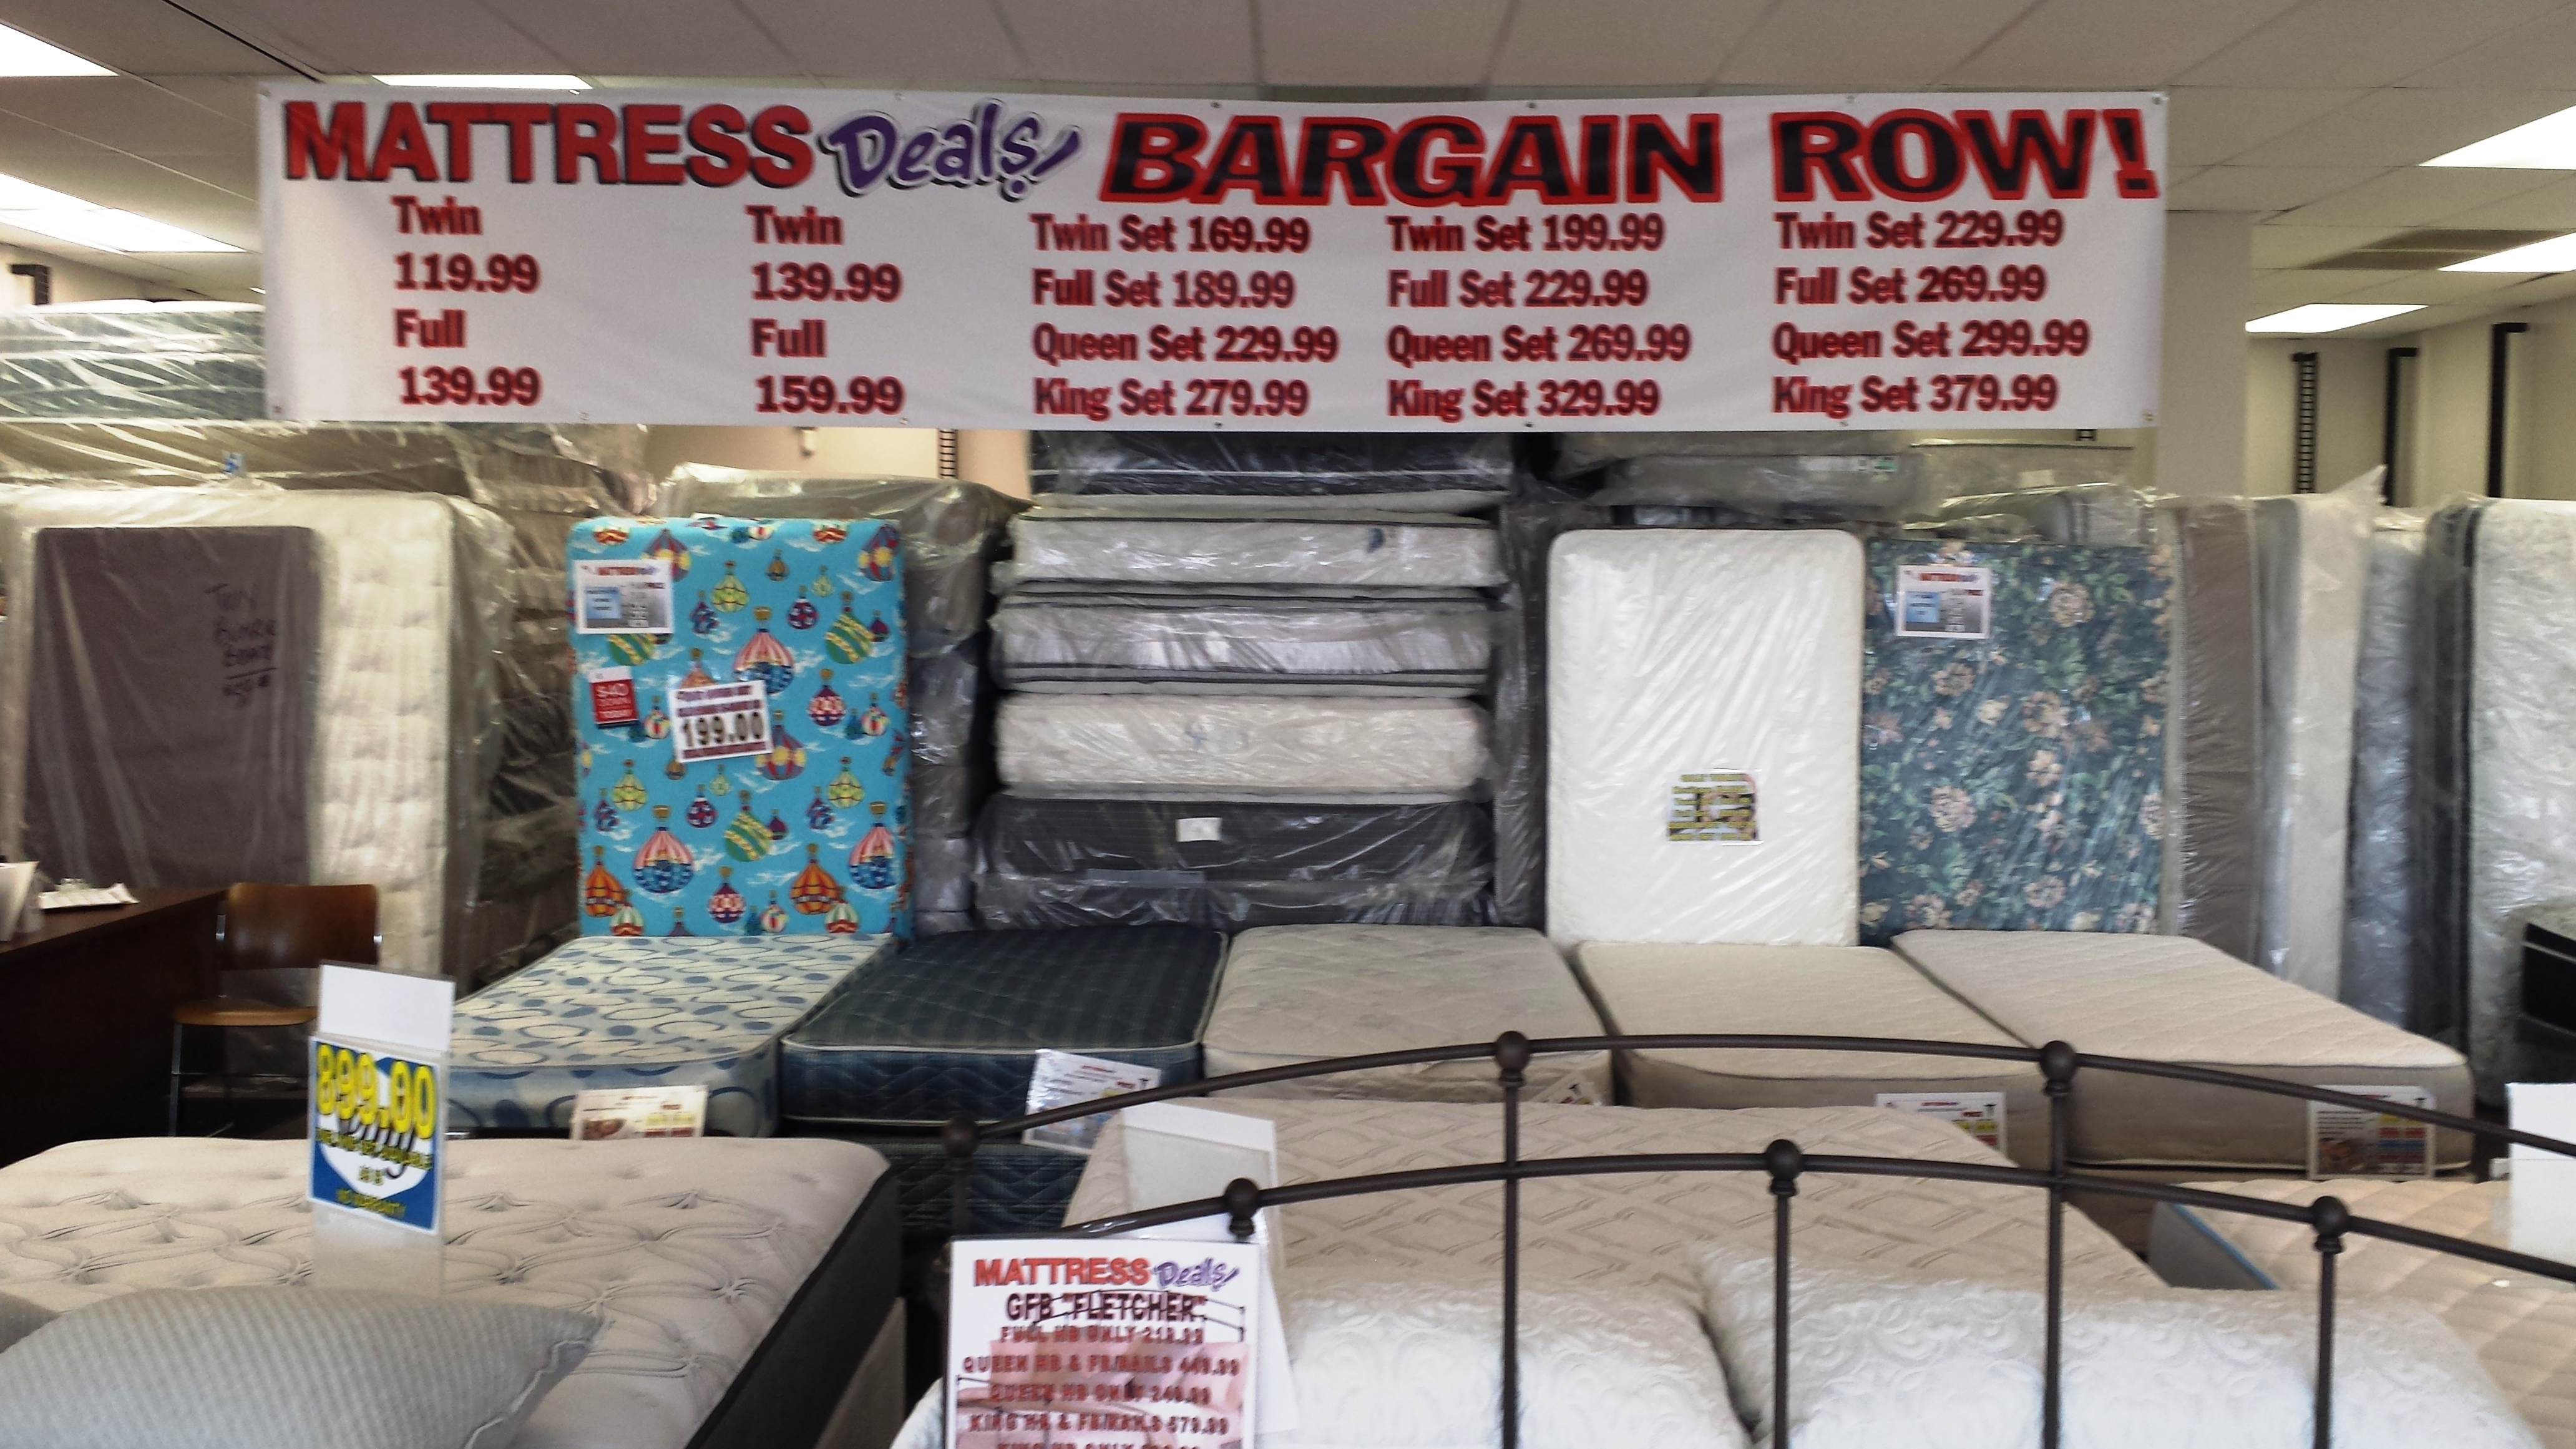 Mattress Deals image 10